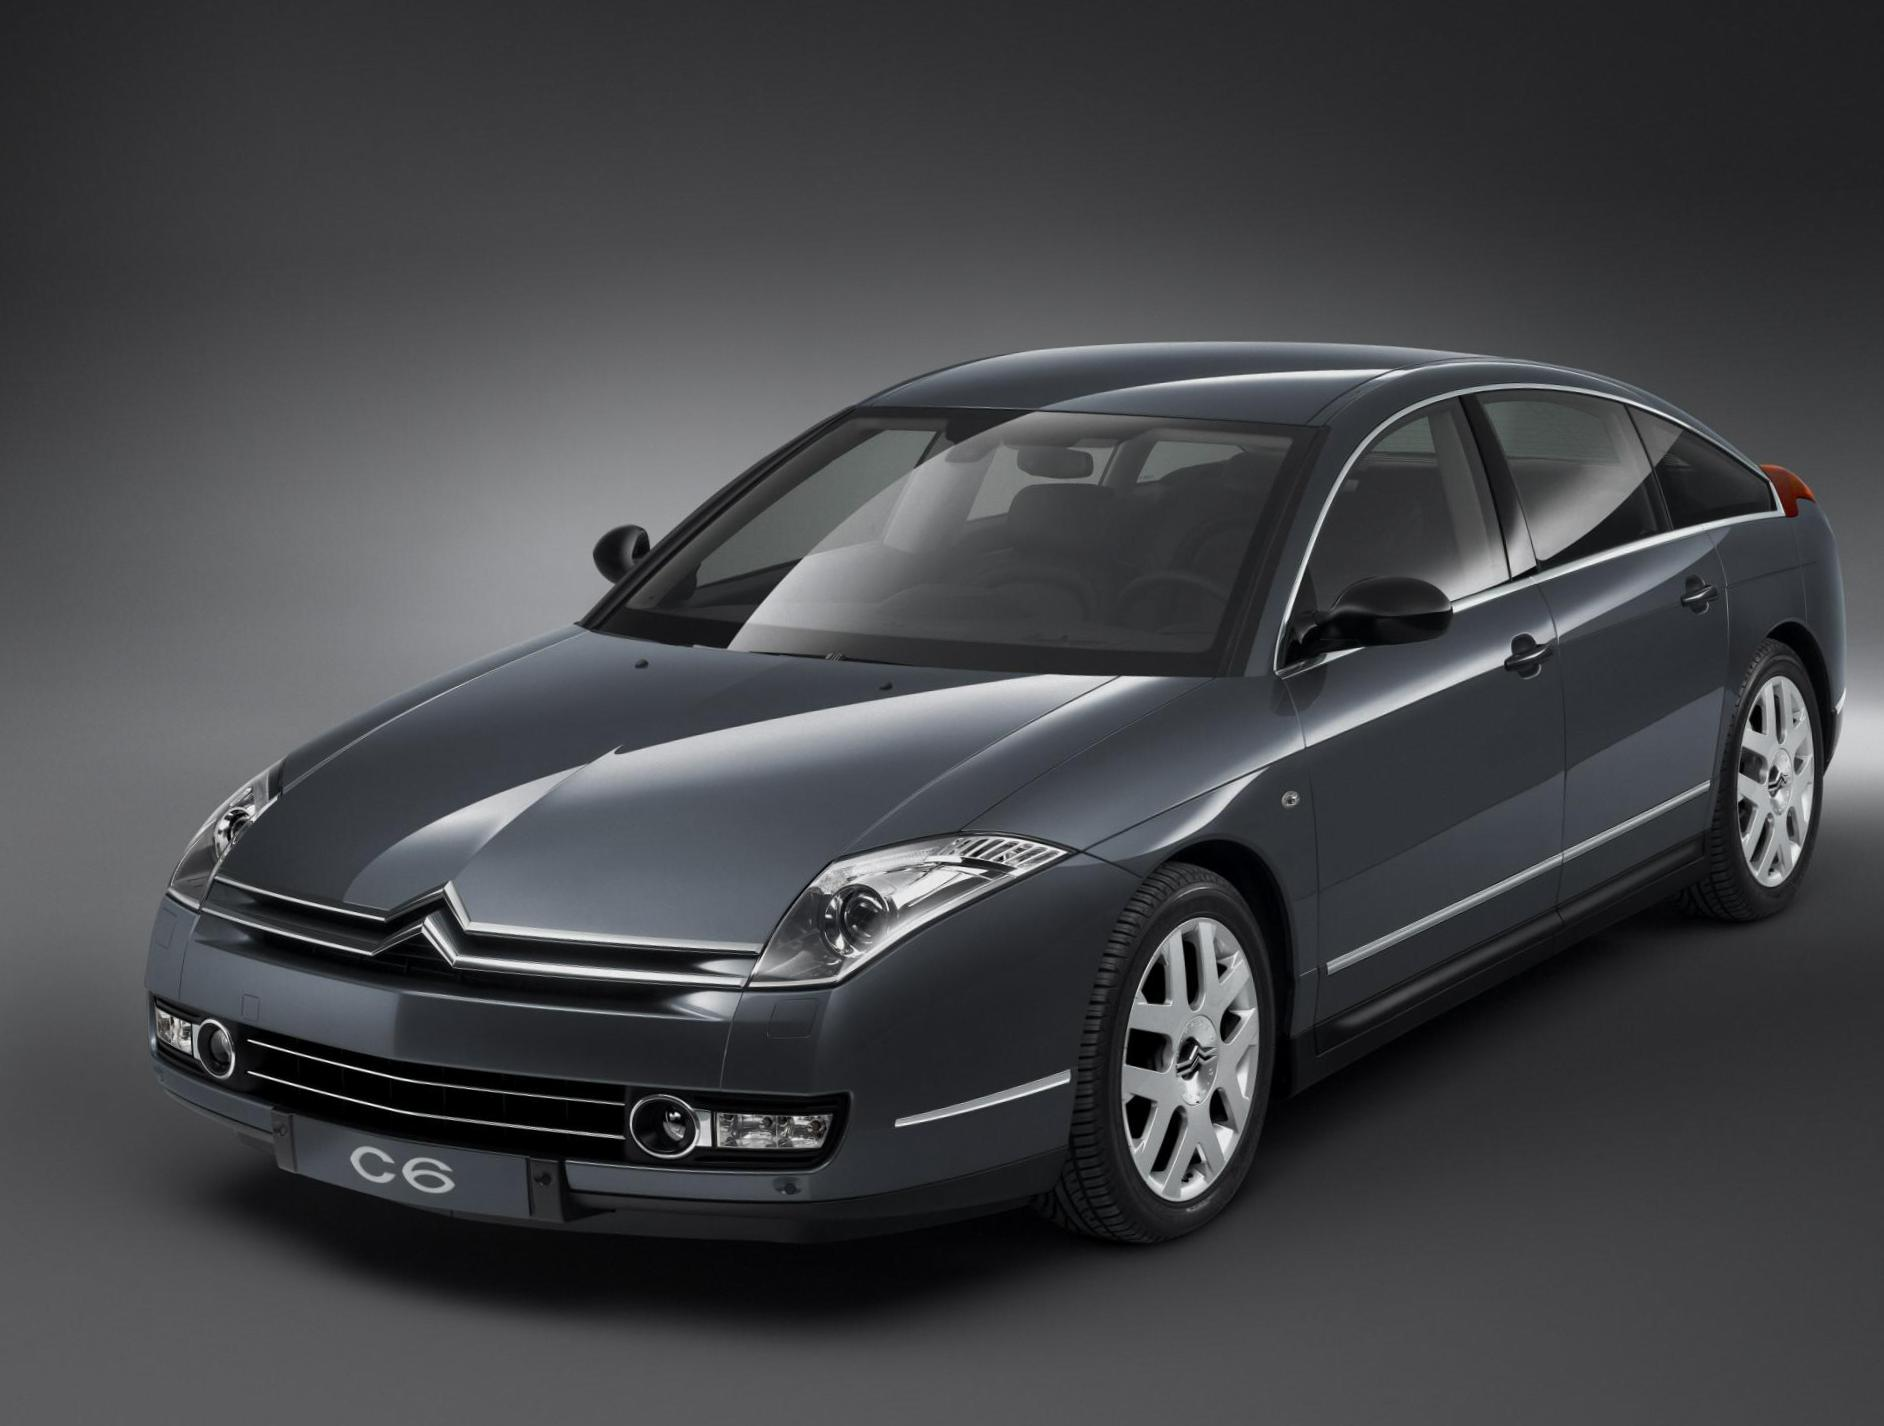 Citroen C6 models hatchback